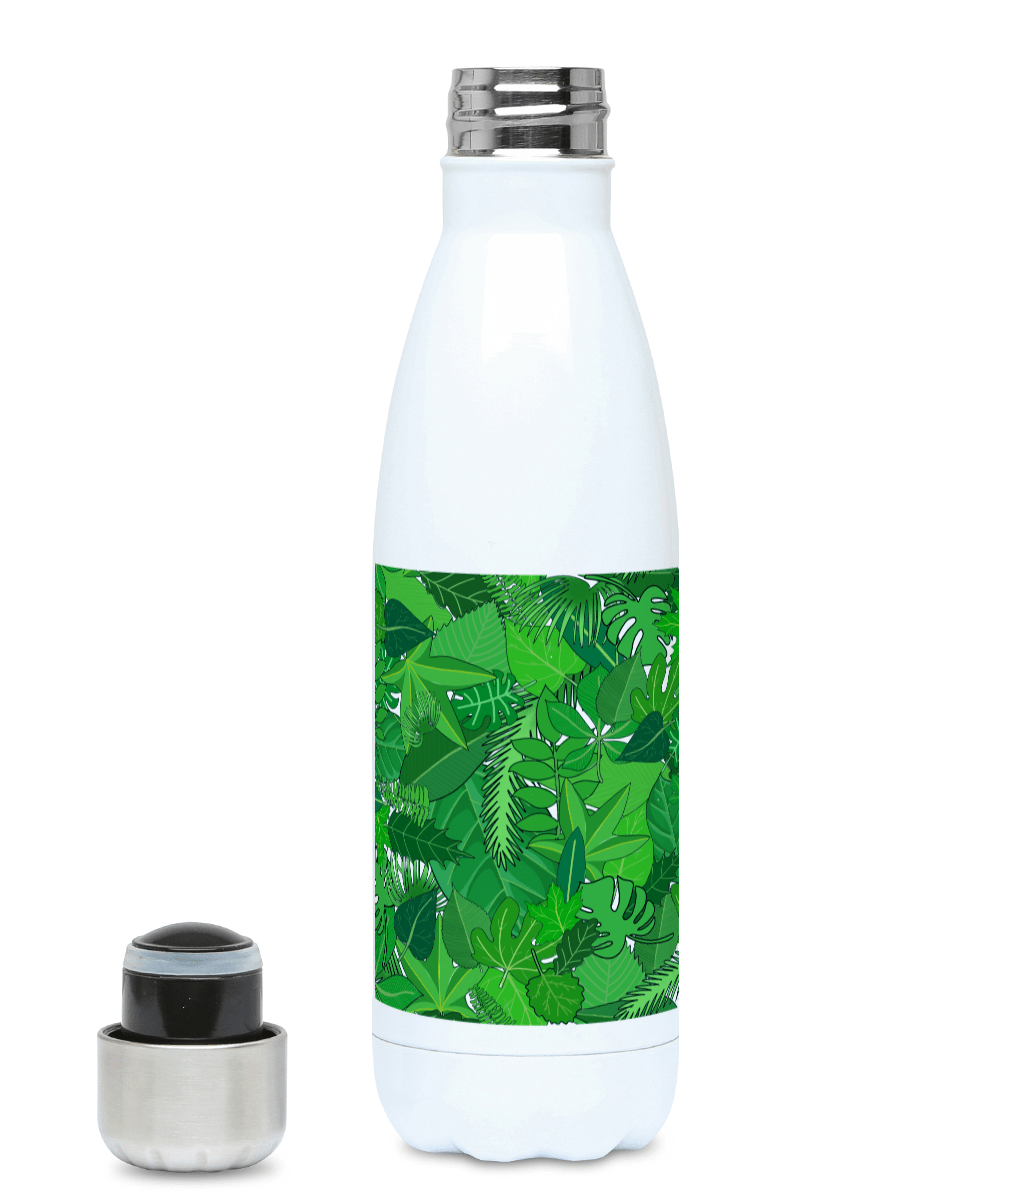 Green Leaves 500ml Water Bottle - Mermaid&Wild